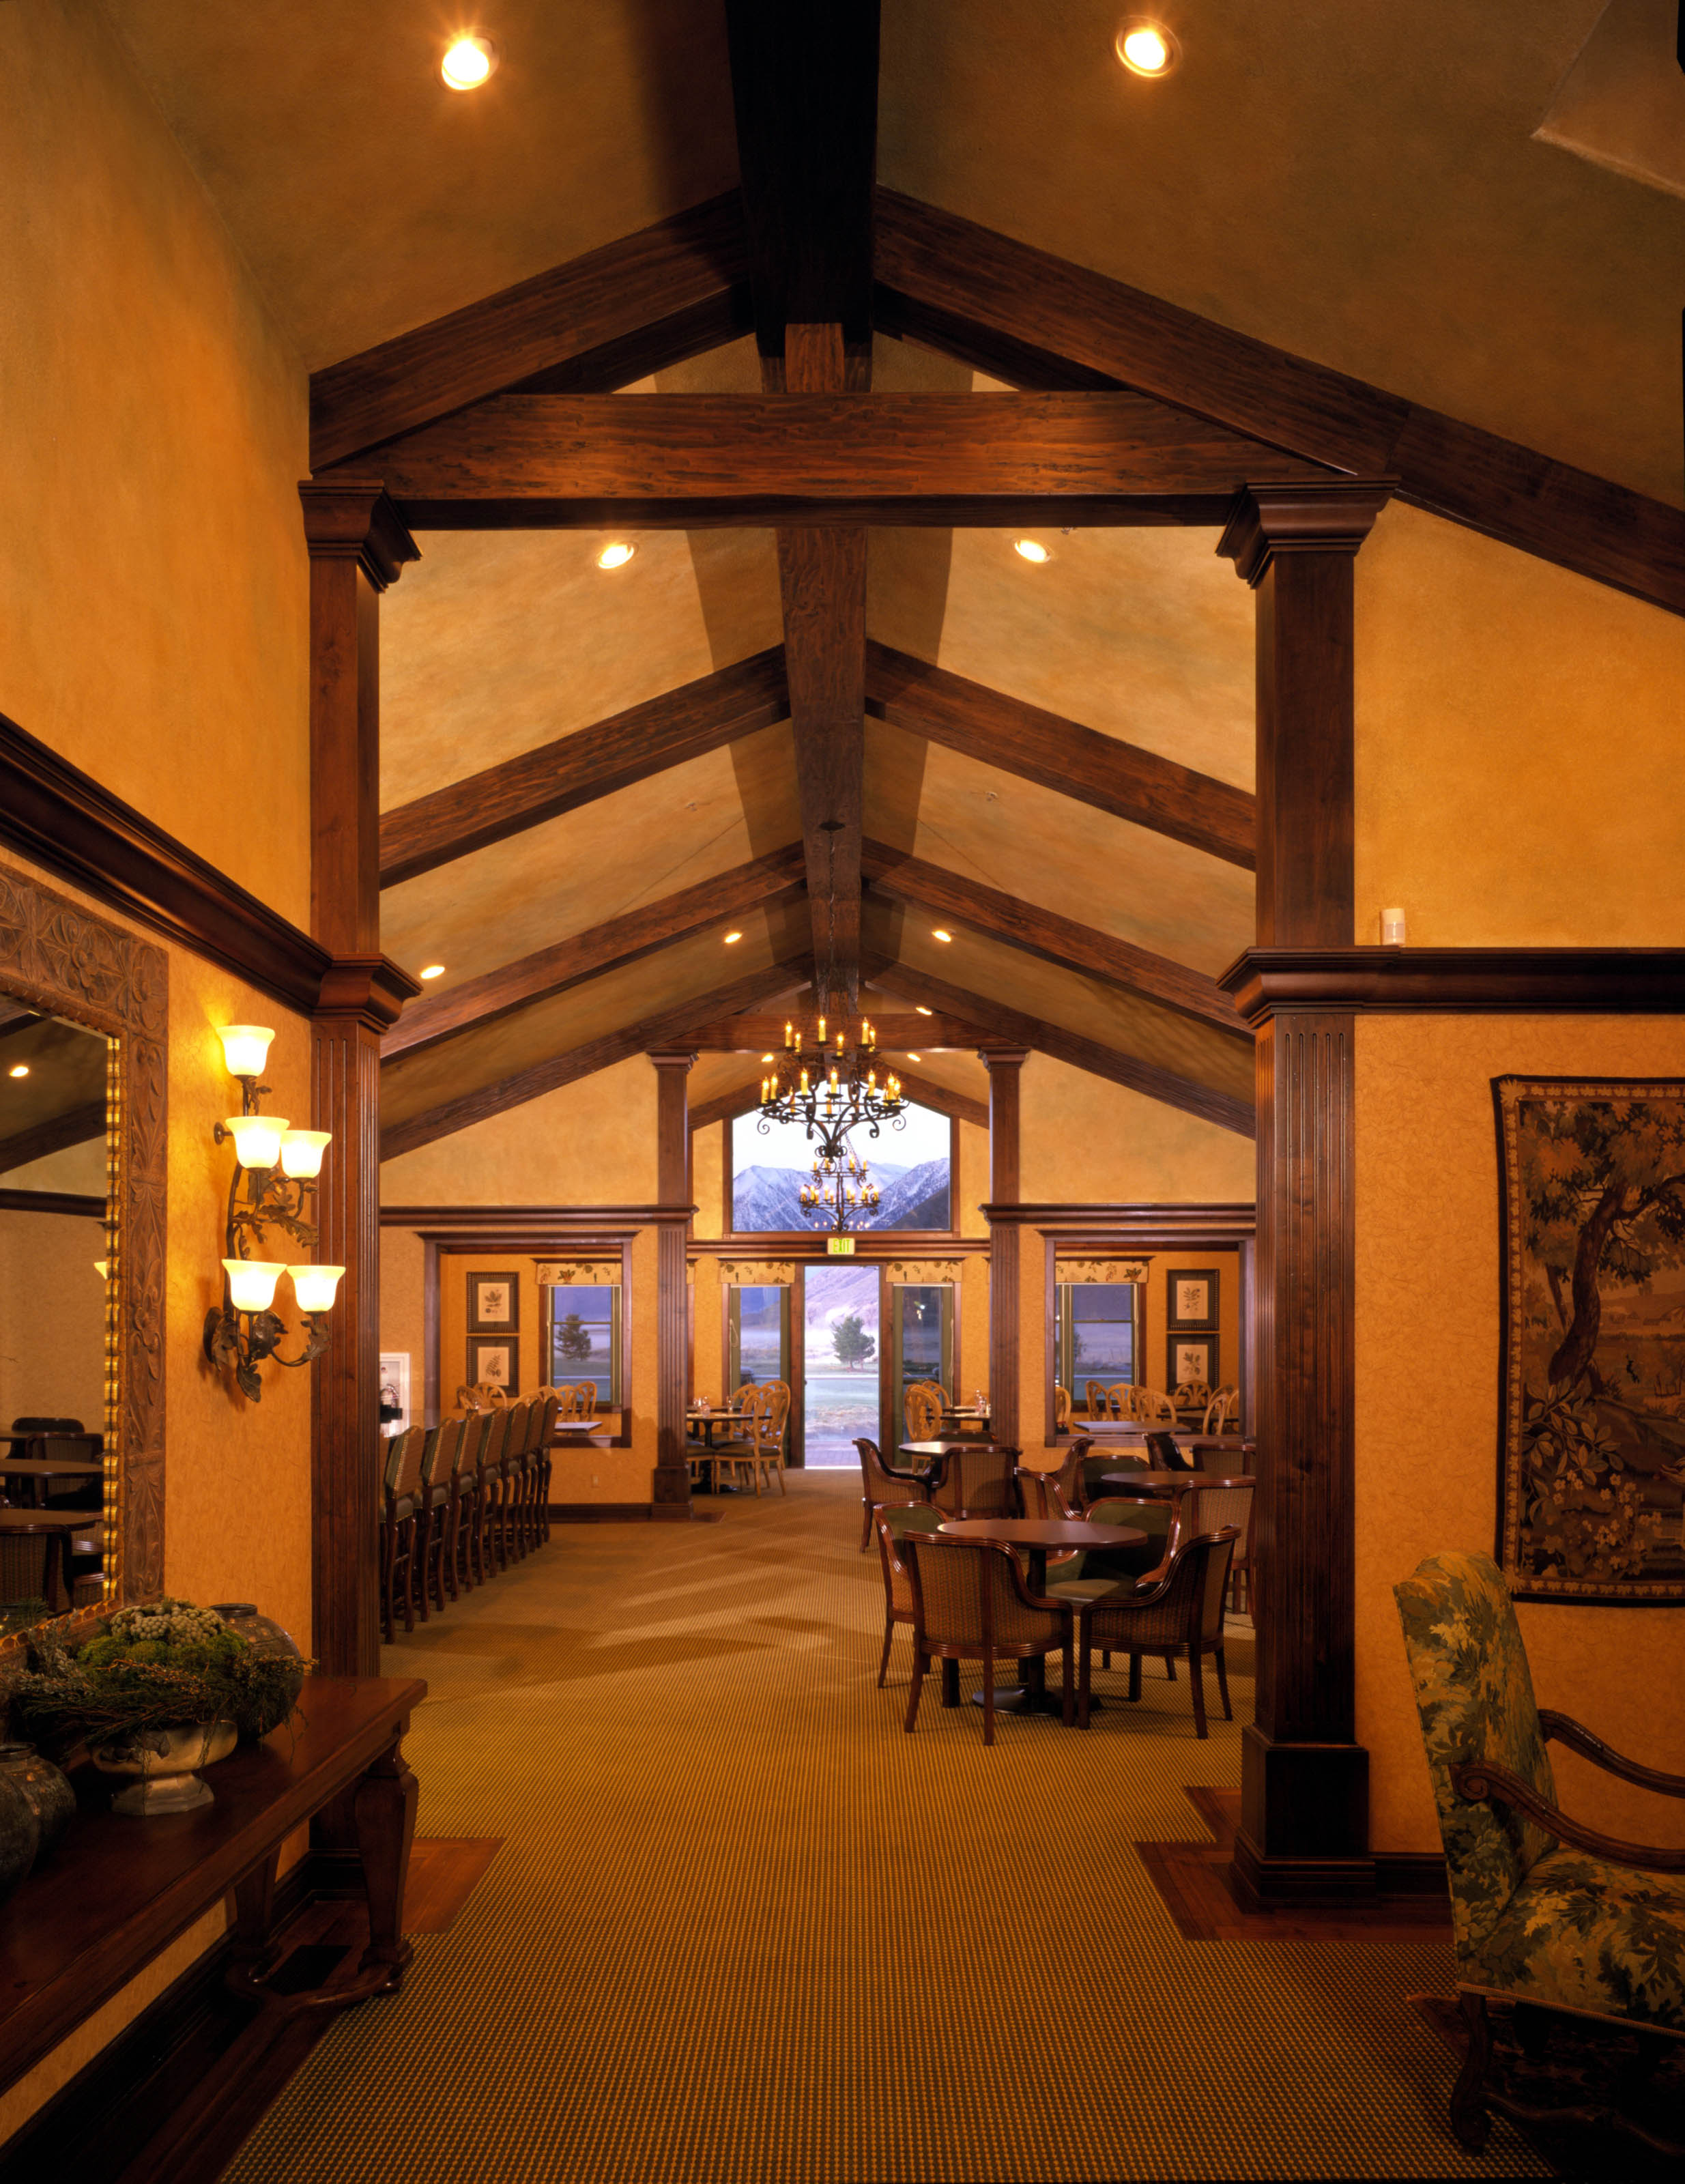 Genoa Lakes Supper Club Interior.JPG